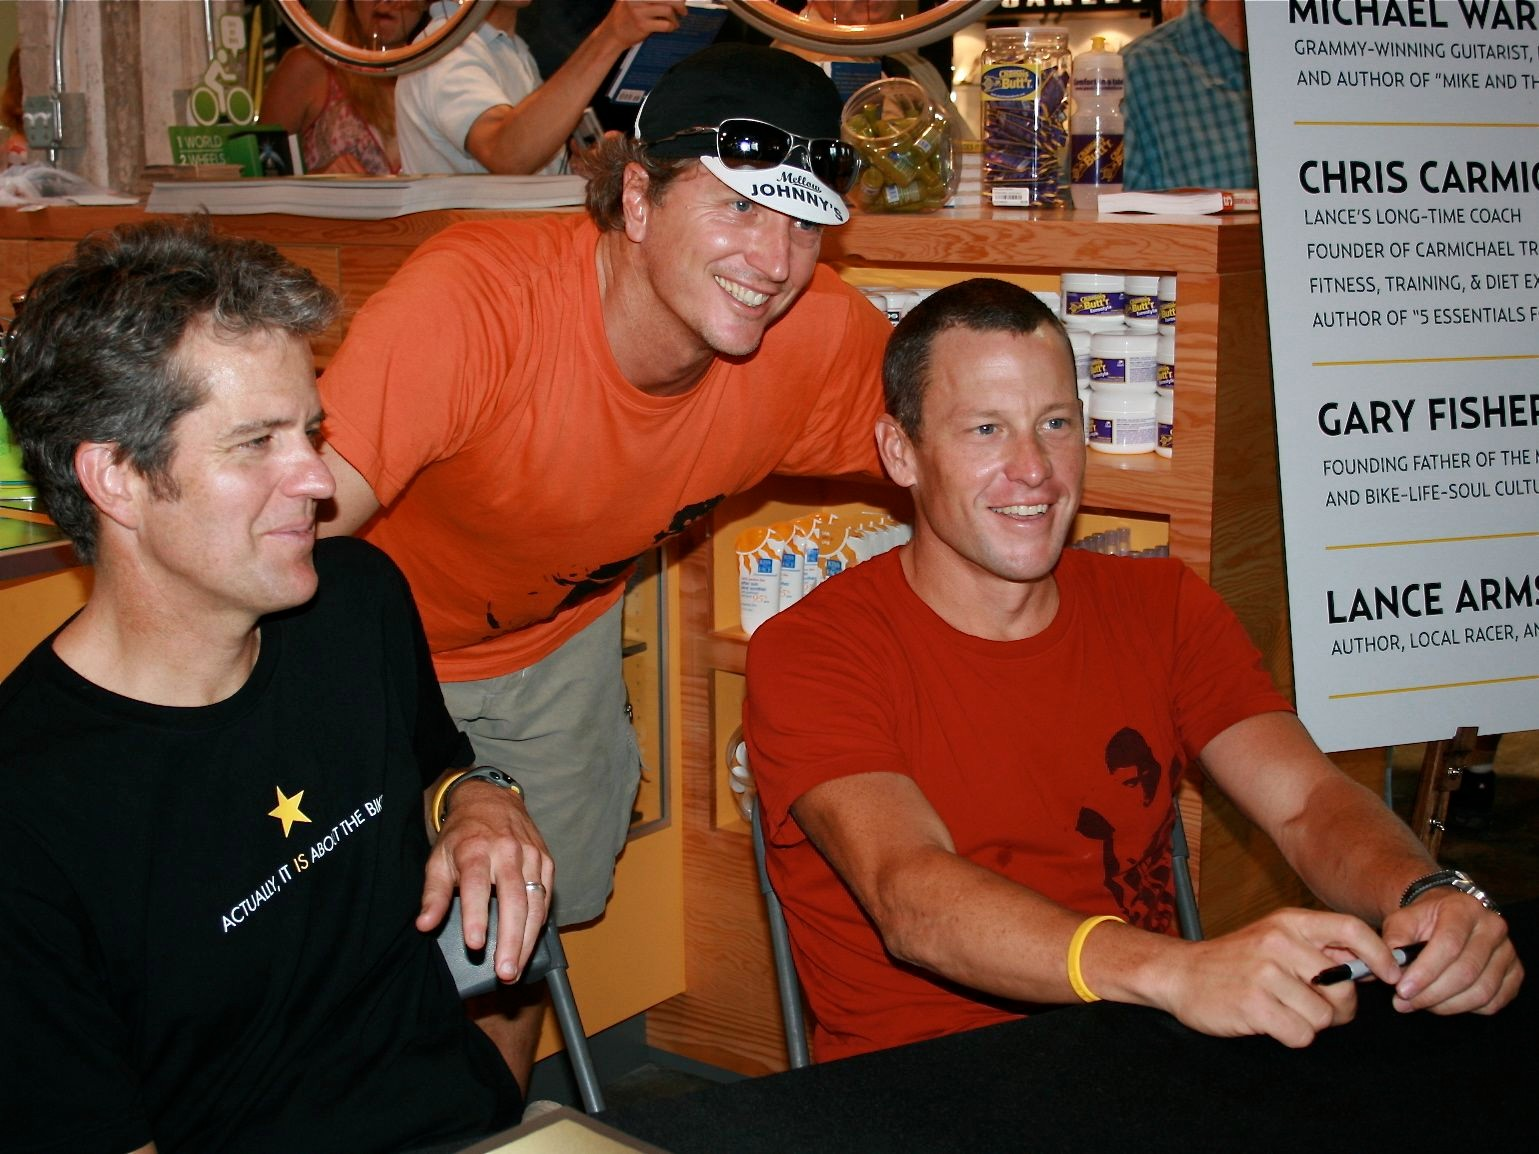 Business partners and friends: Bart Knaggs (C) and Lance Armstrong at the Mellow Johnny's bike shop opening in May, 2008.